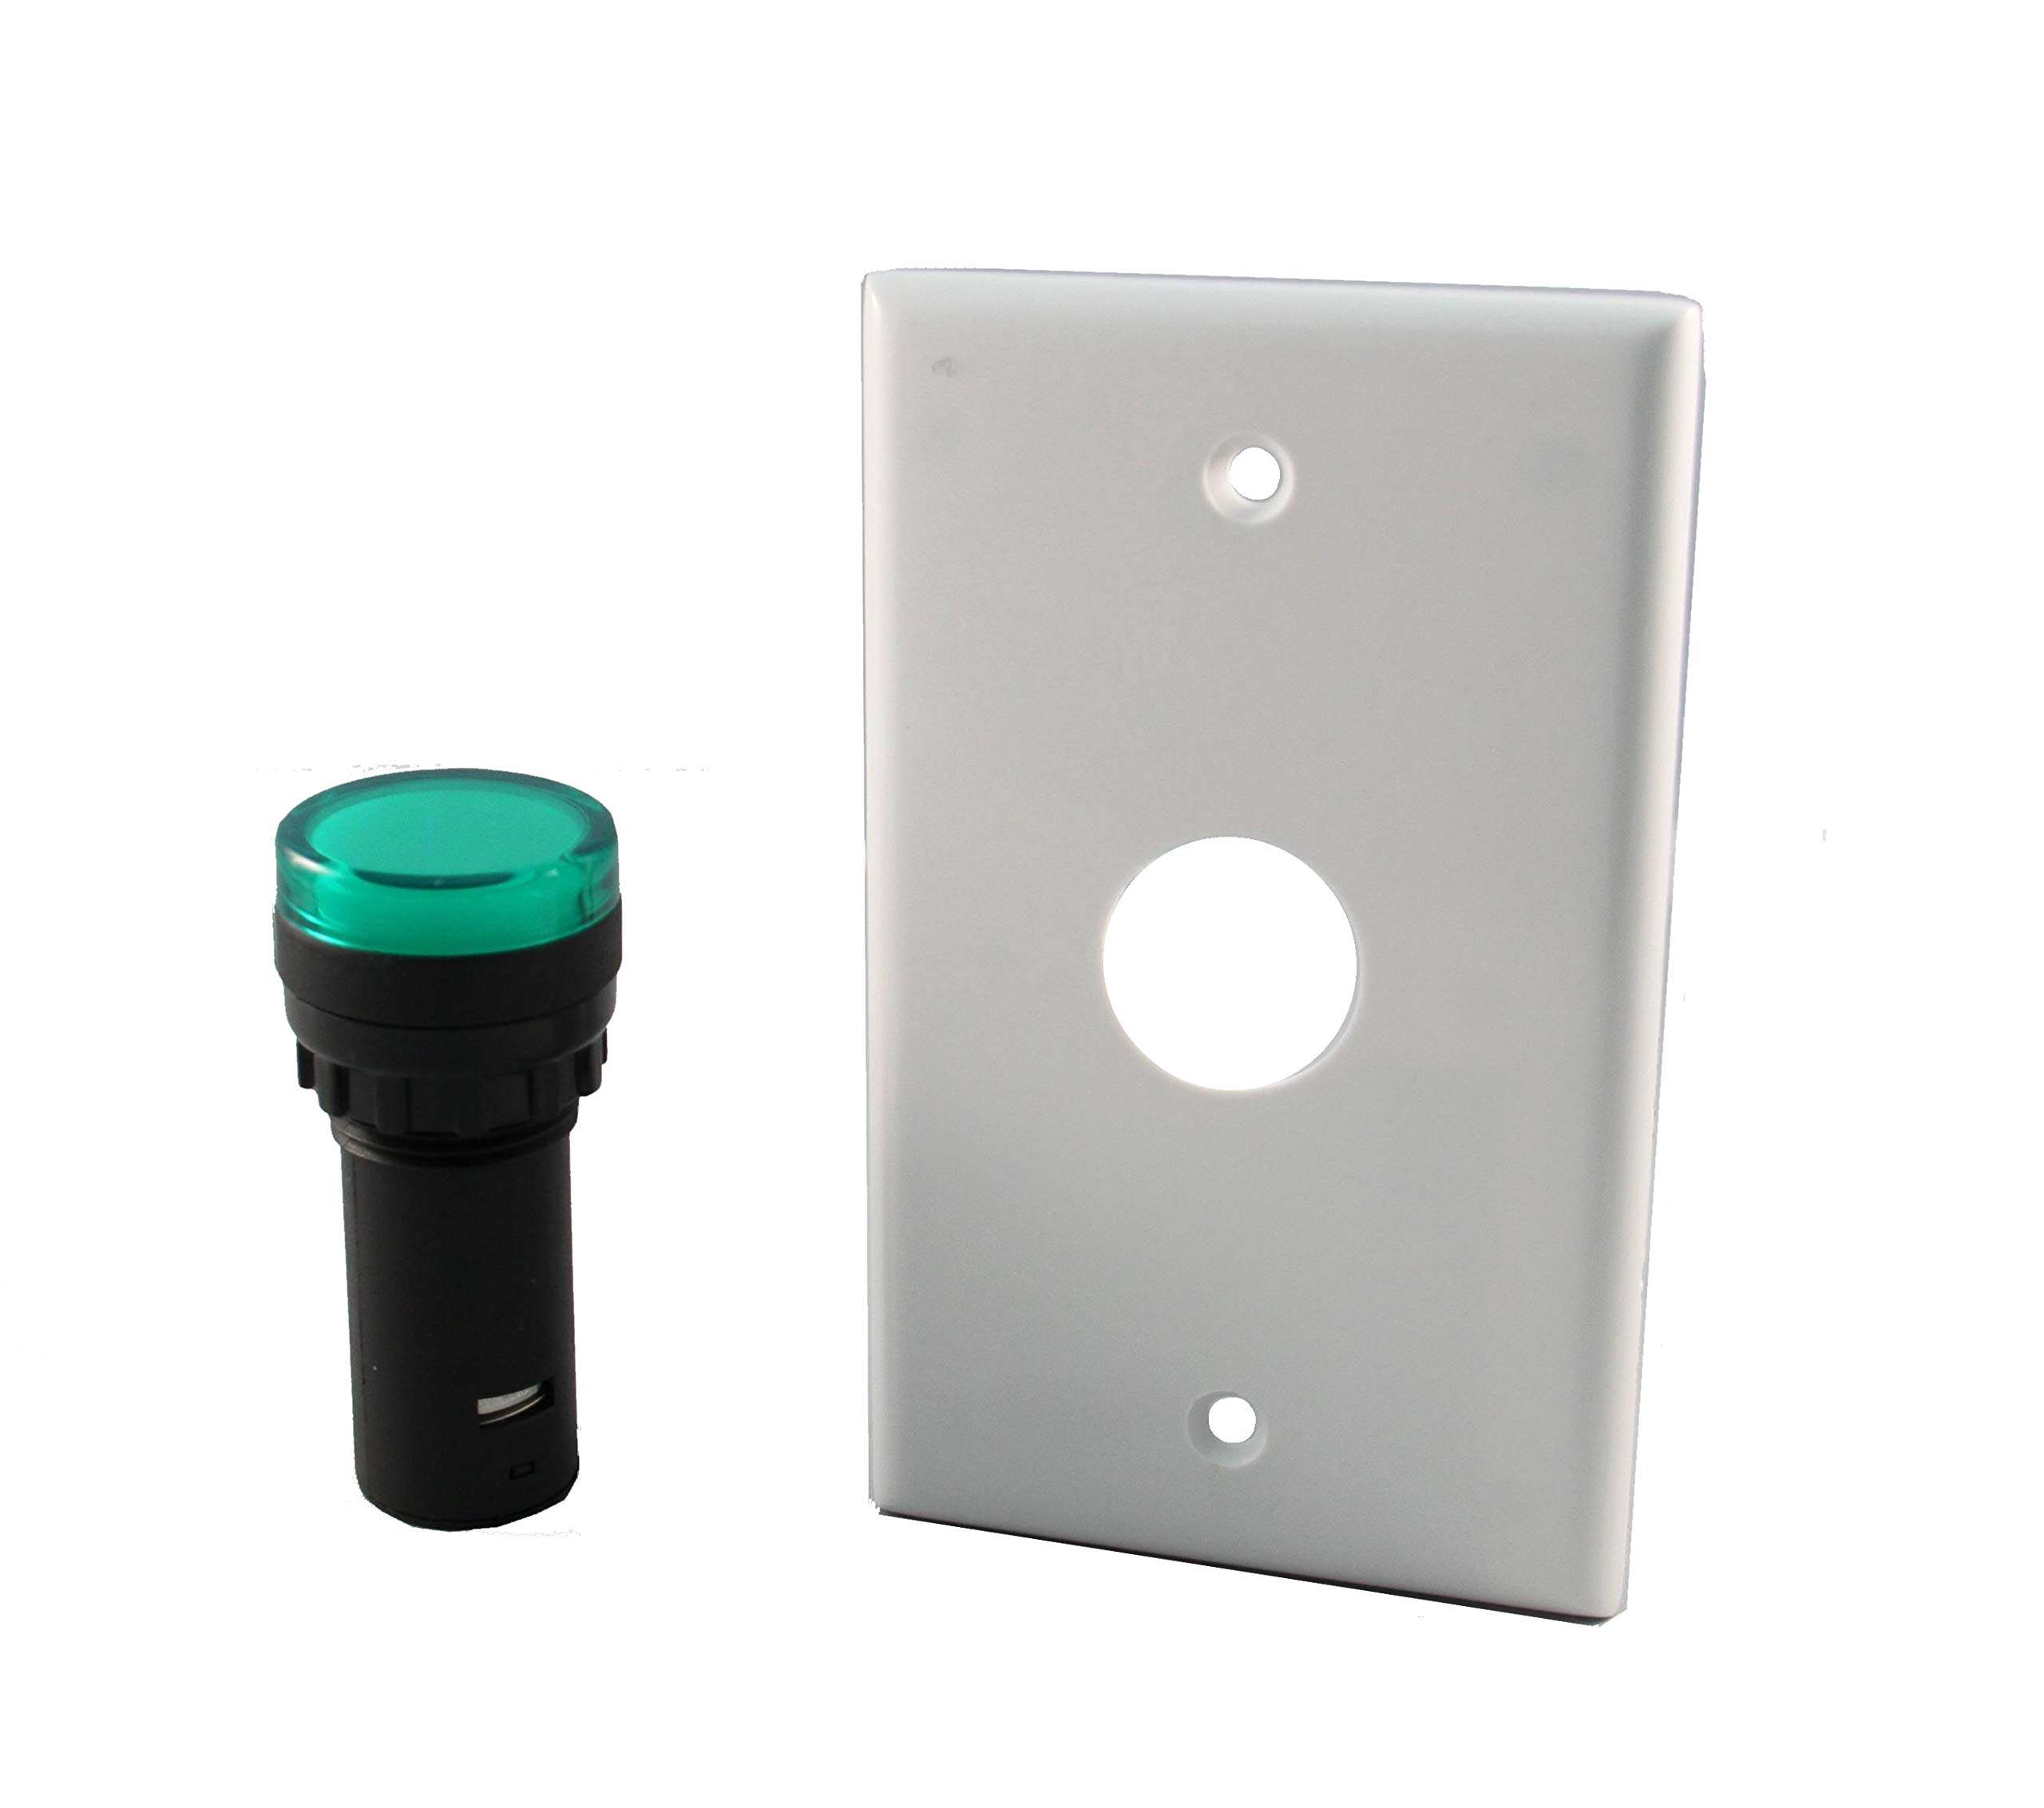 LED 22mm Indicator Light With Wall Plate, 120VAC Green